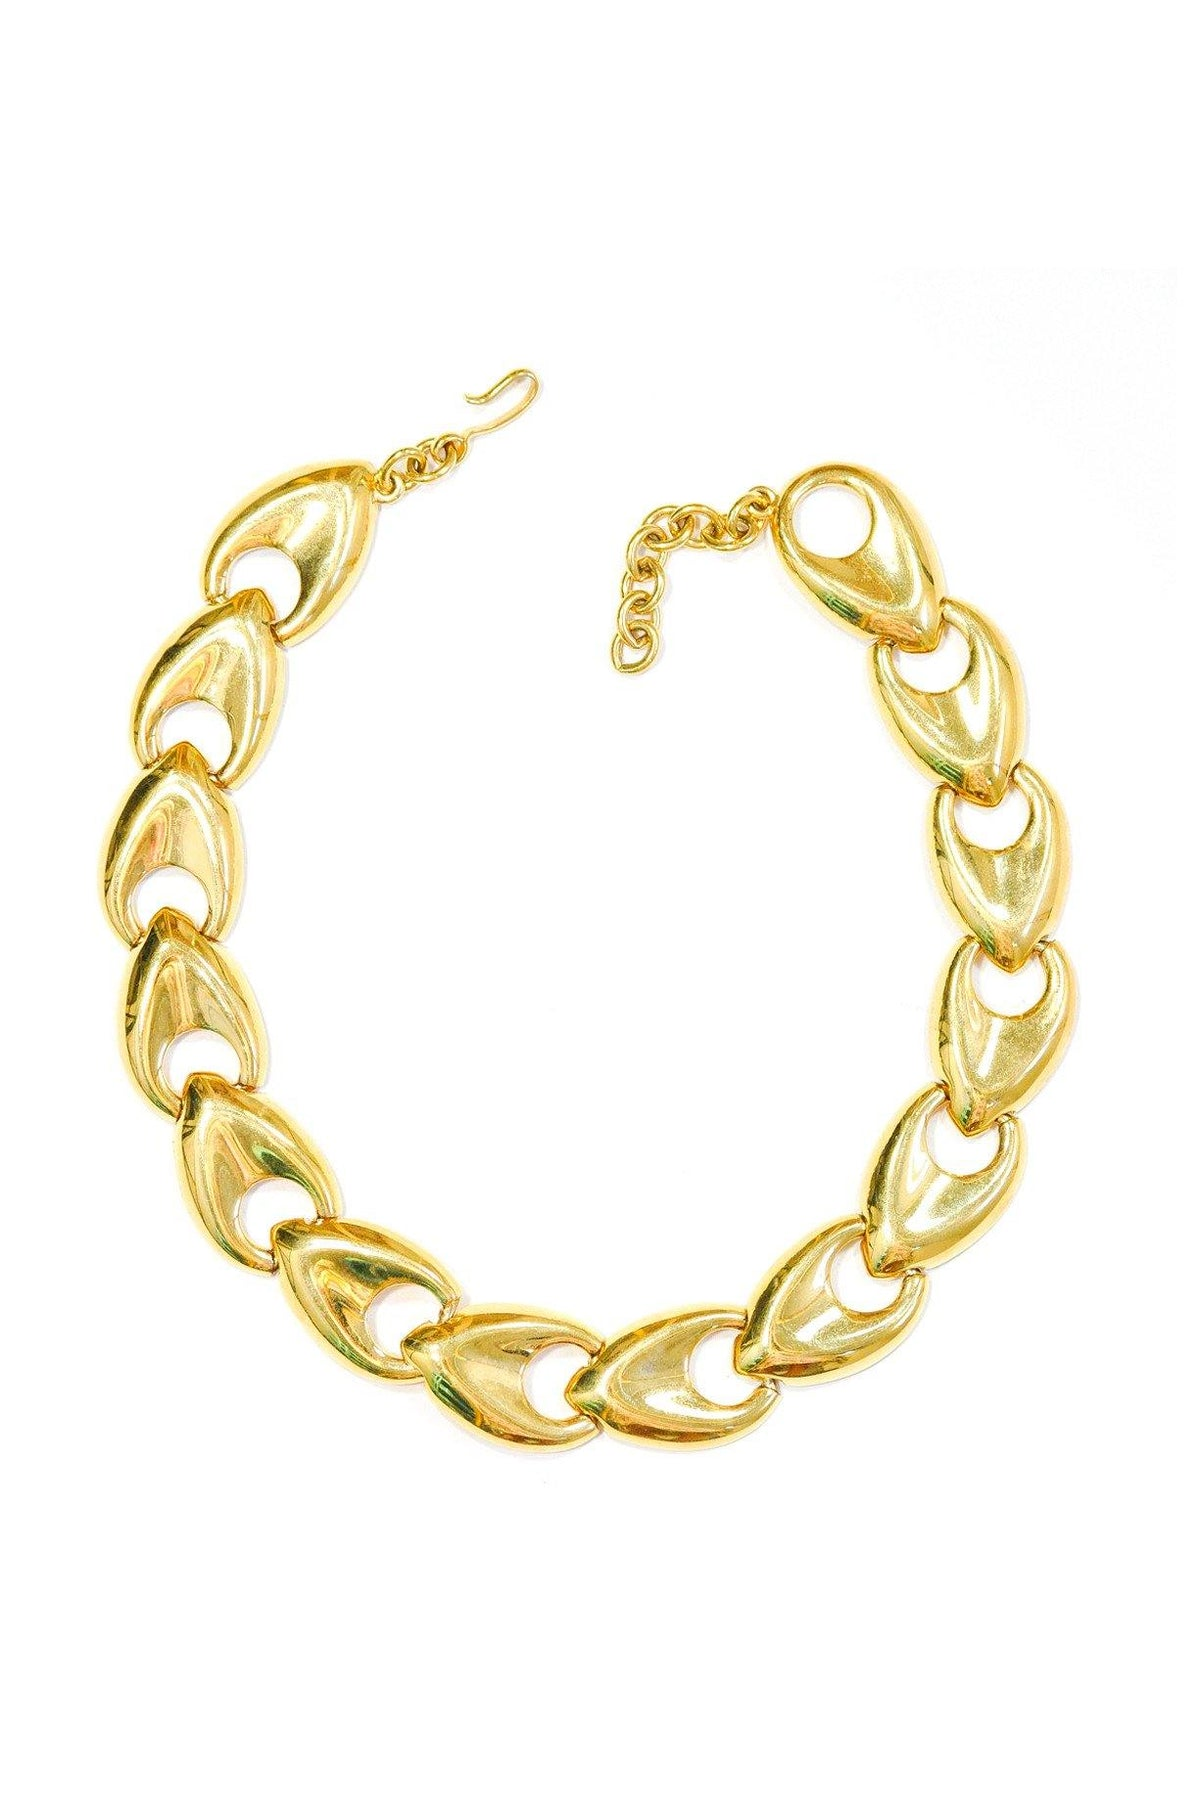 80's Monet Chunky Gold Choker Necklace